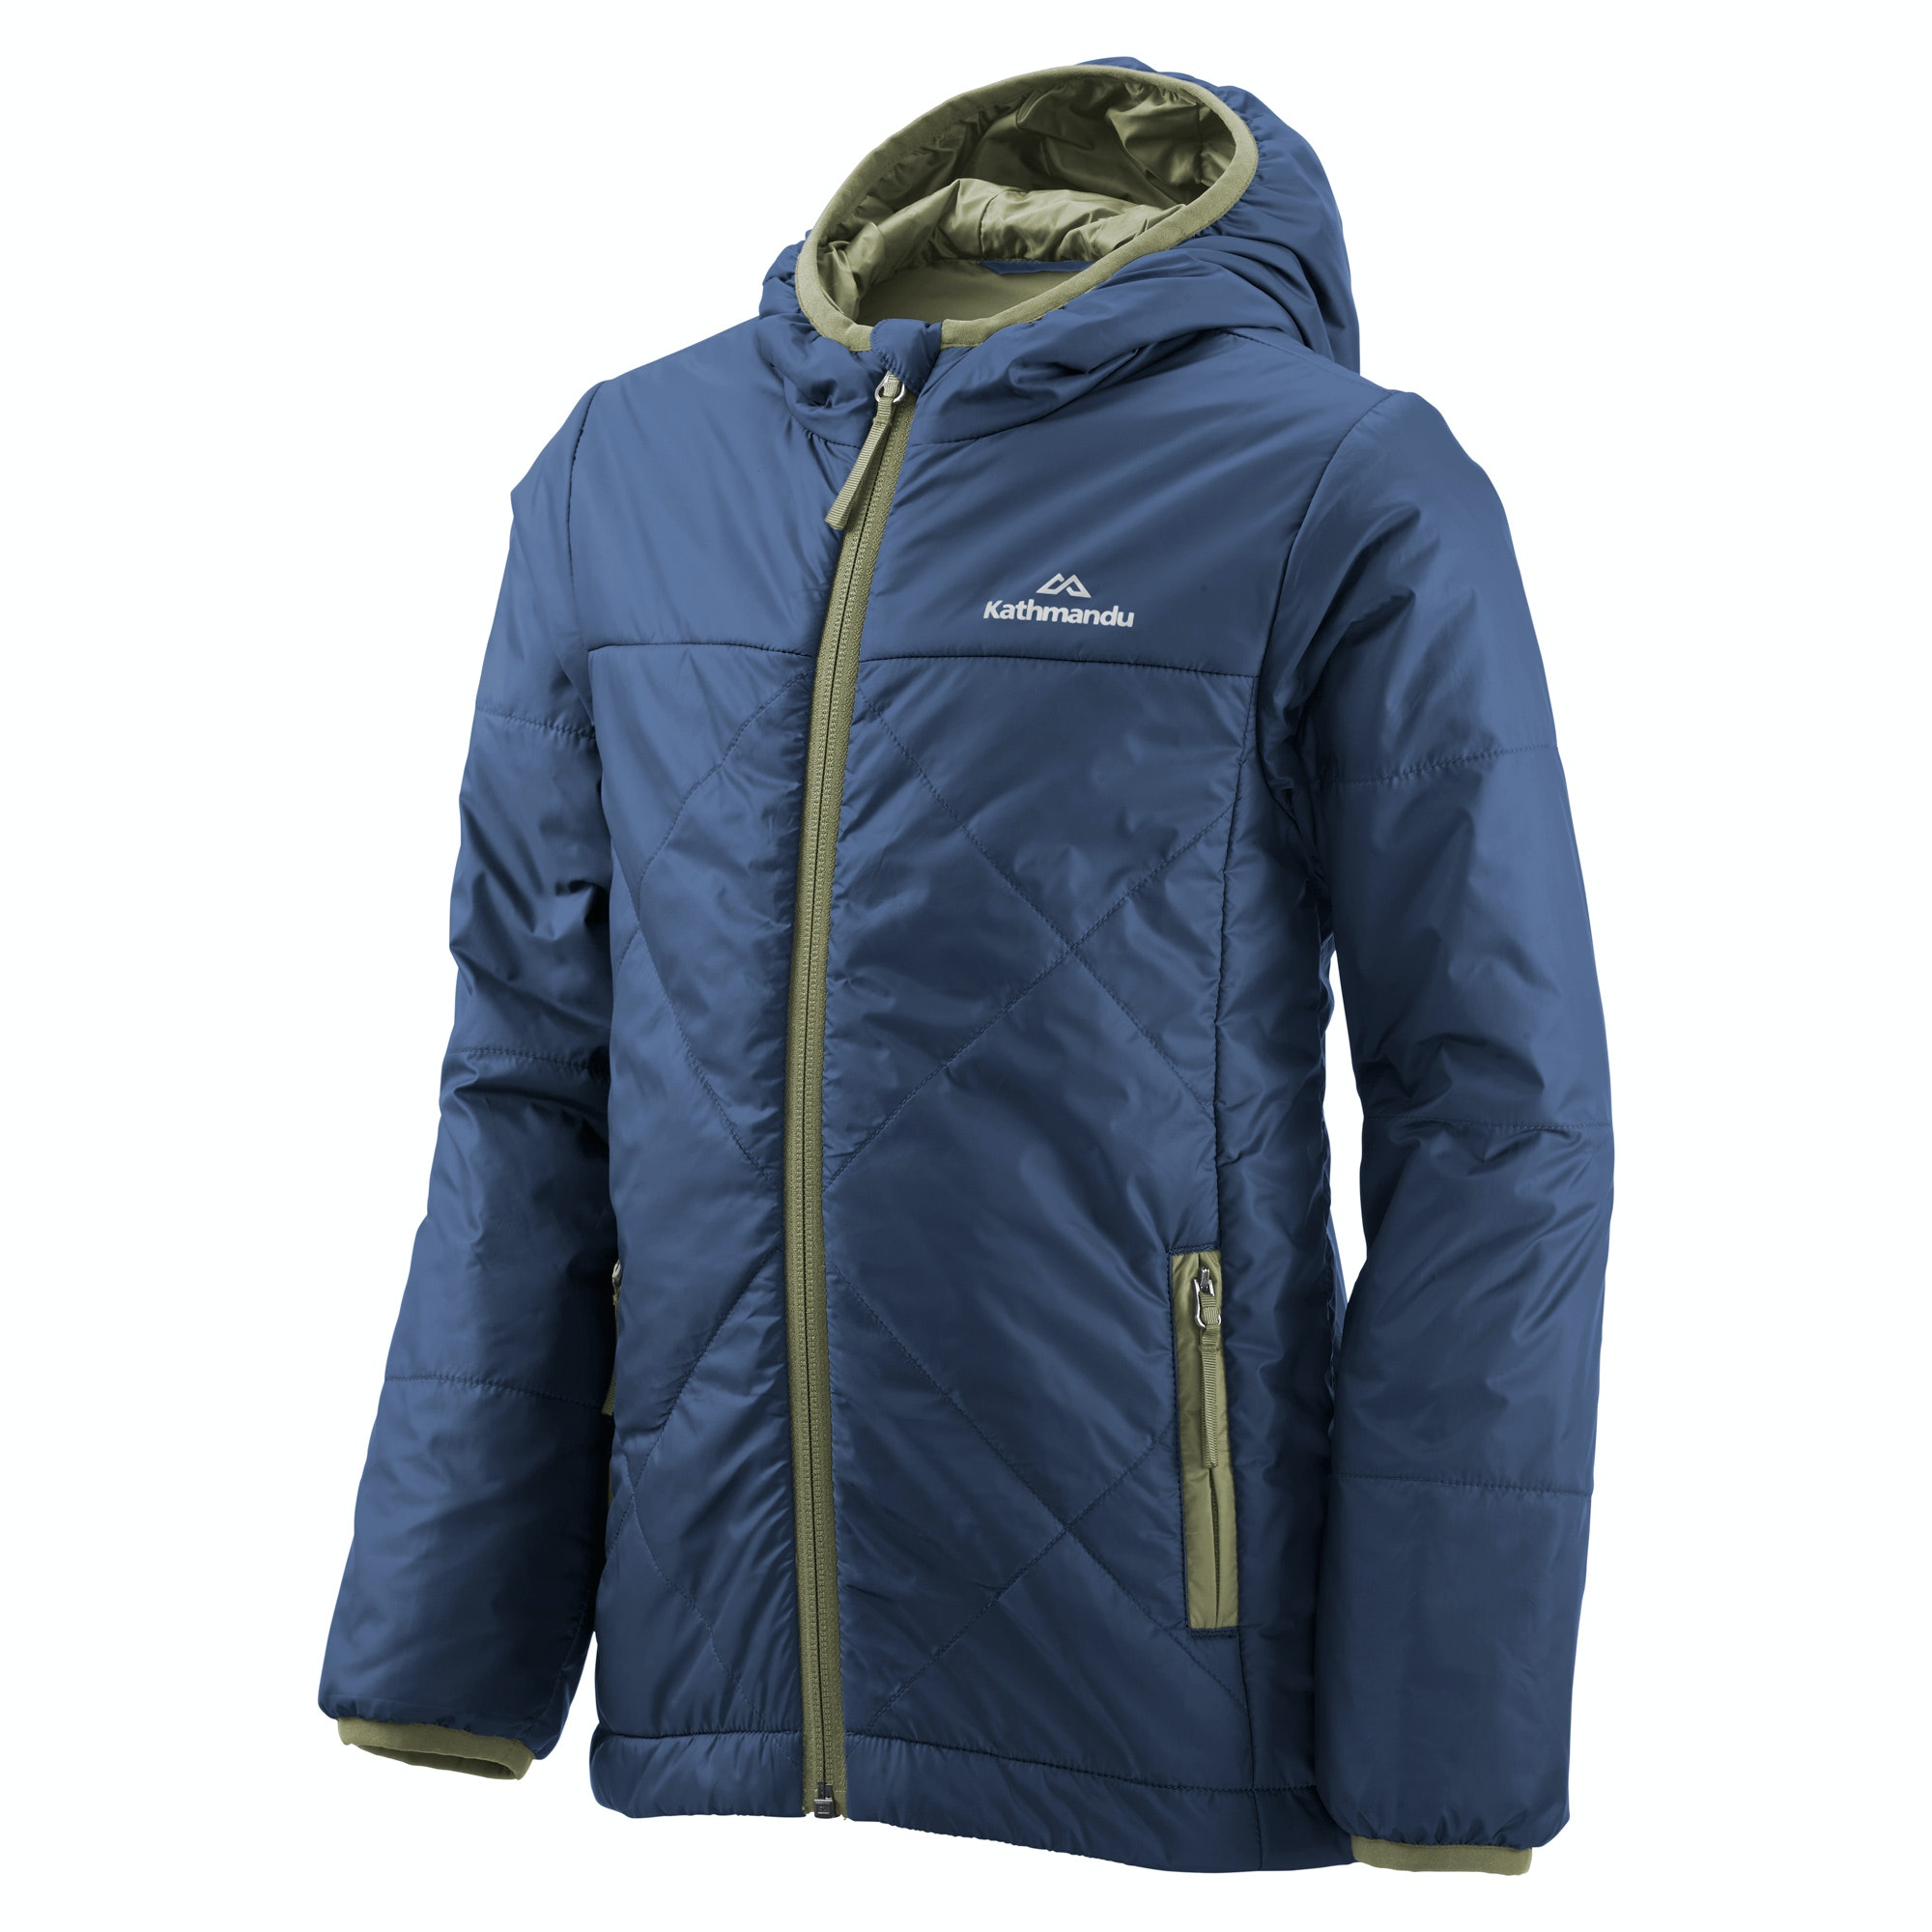 Shop for men's winter jackets online. Stay warm this winter with a variety down jackets, snow & ski parkas and insulated shells from Mountain Hardwear.